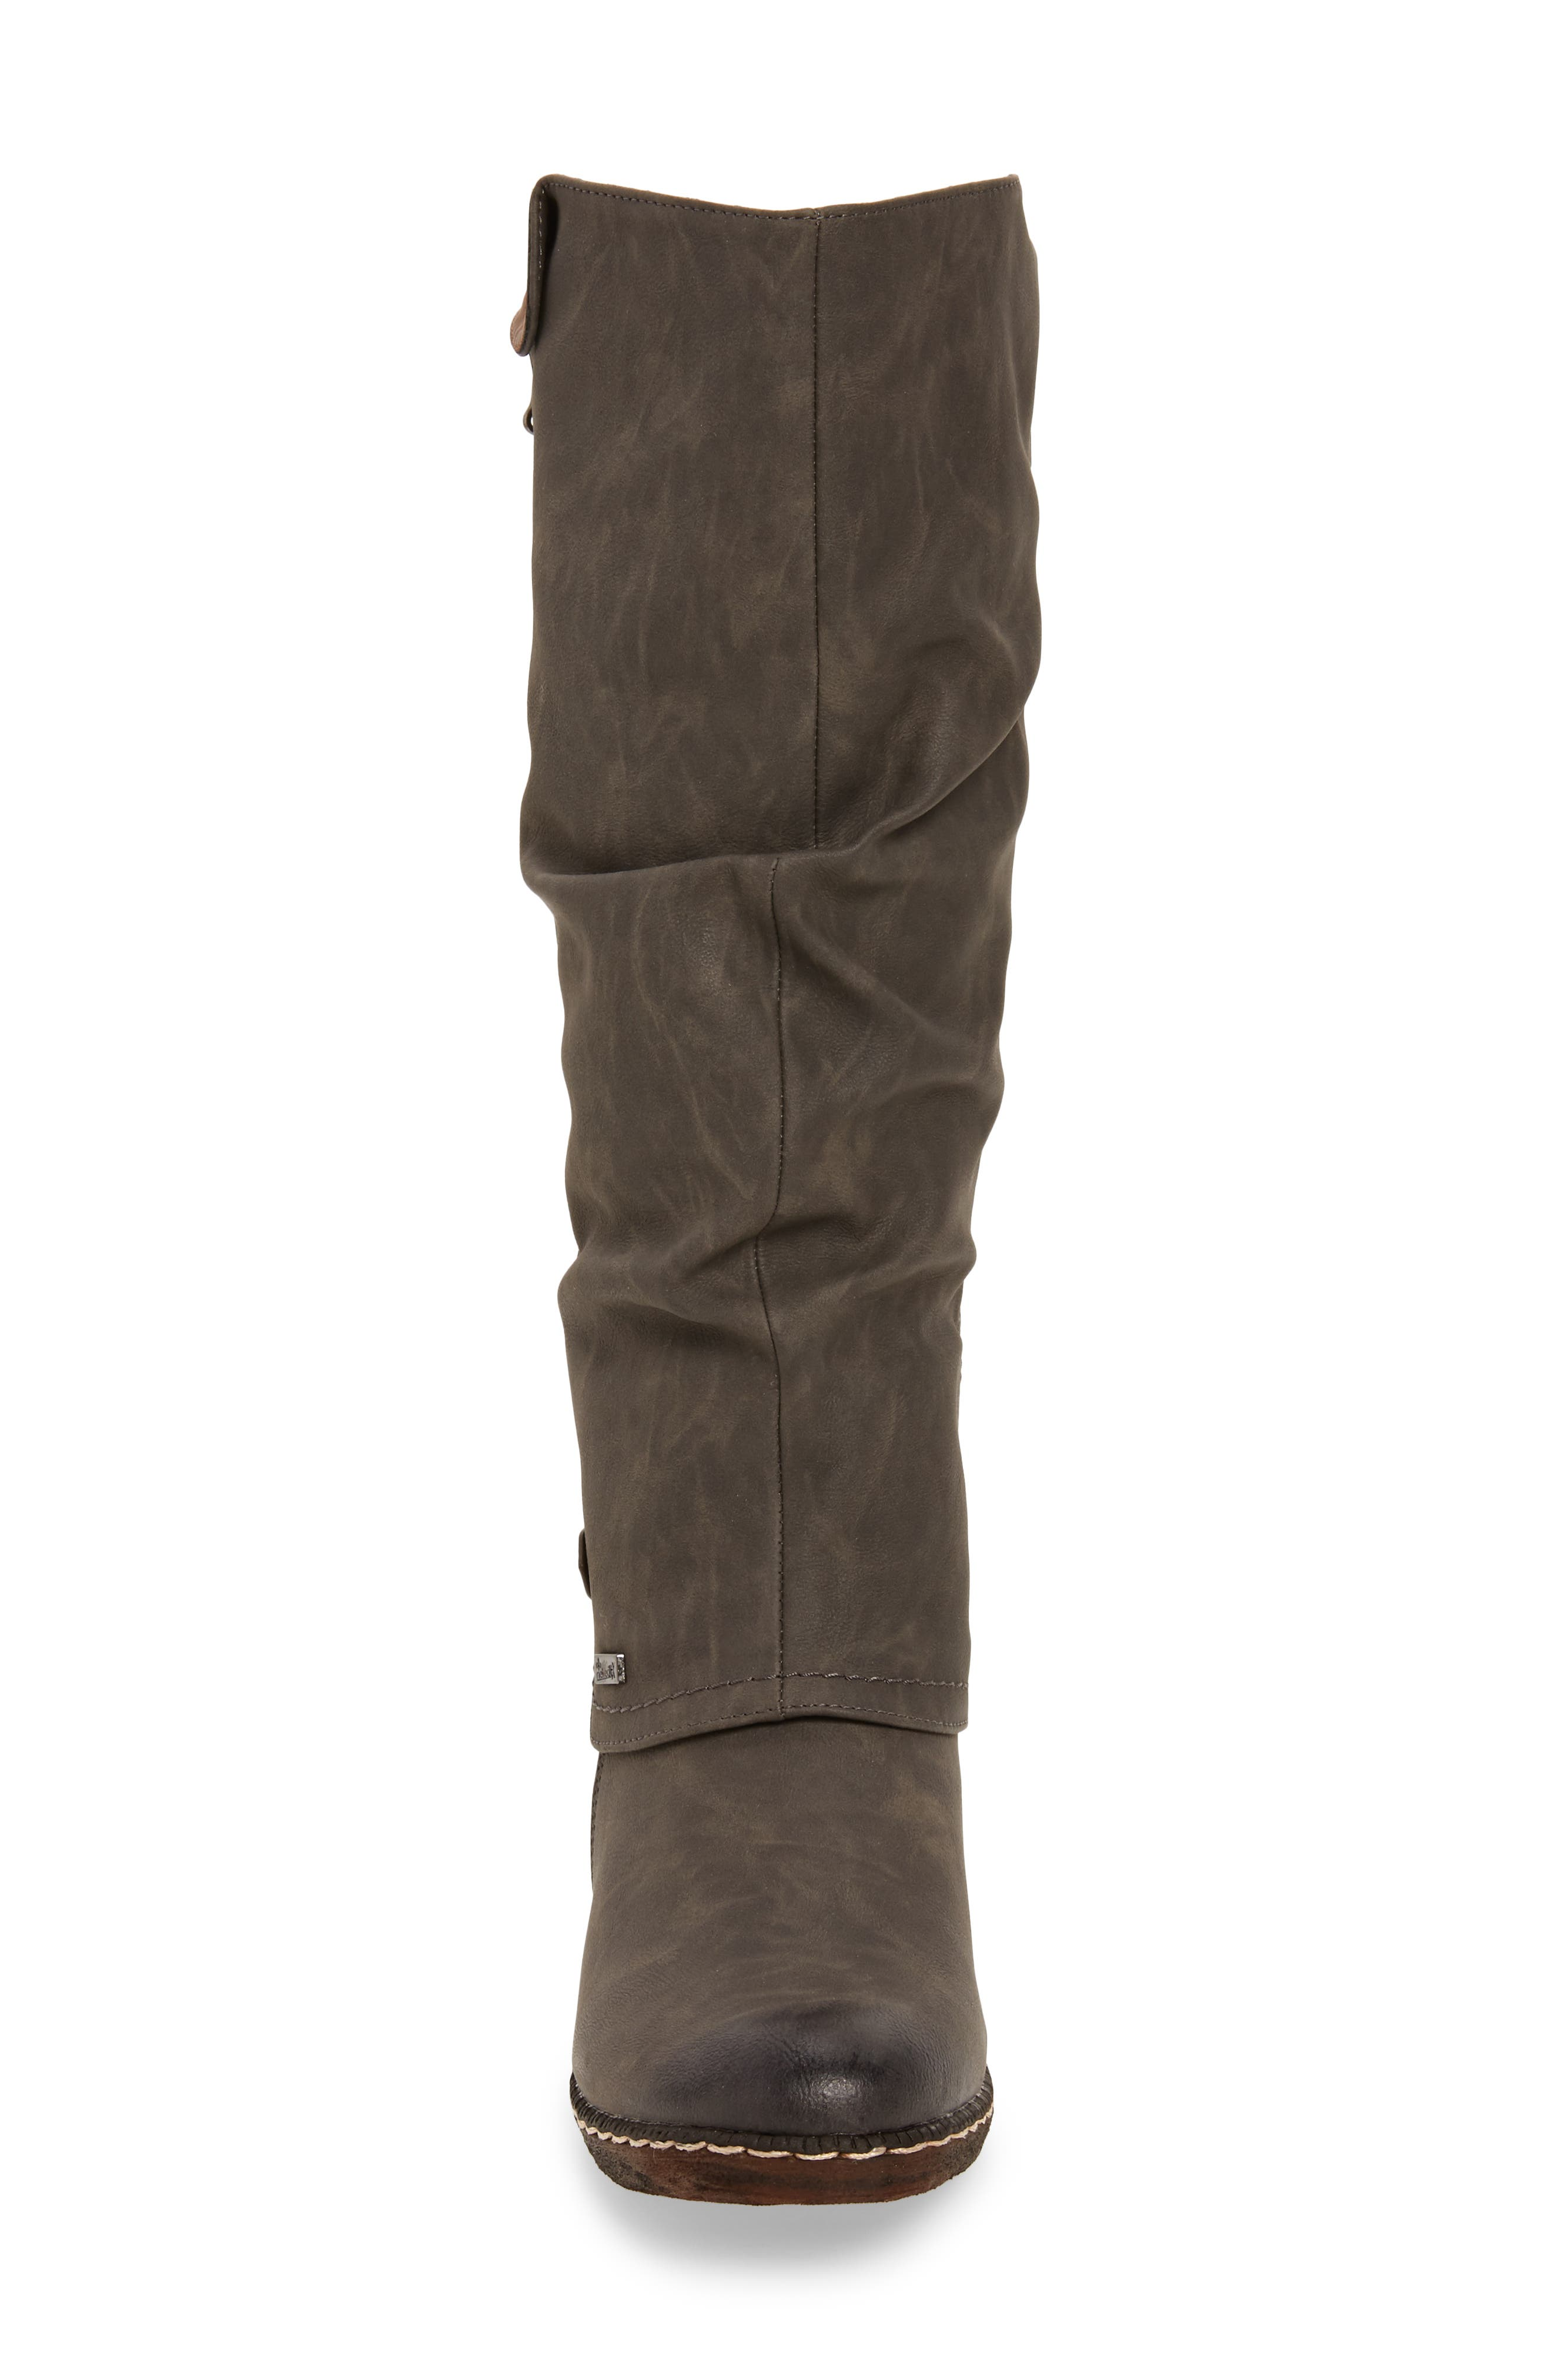 'Bernadette 55' Slightly Slouchy All Weather Boot,                             Alternate thumbnail 4, color,                             020